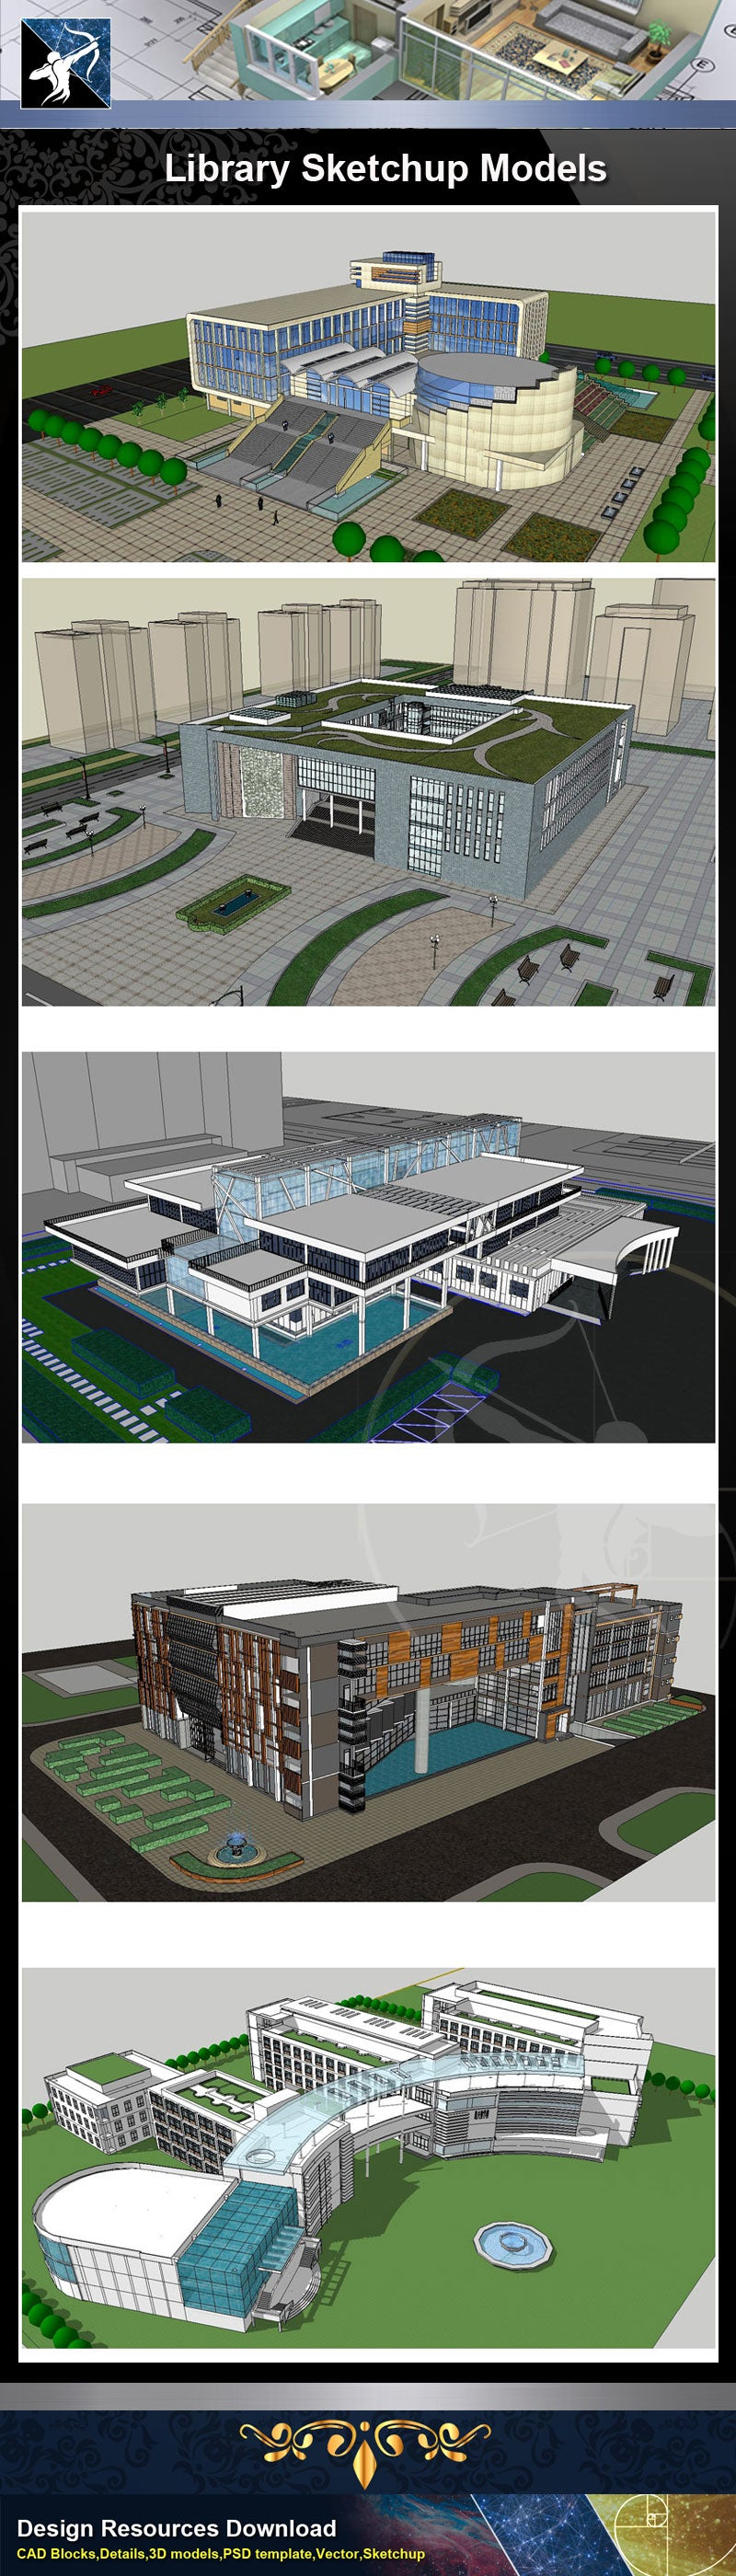 ★Sketchup 3D Models-15 Types of Library Sketchup Models